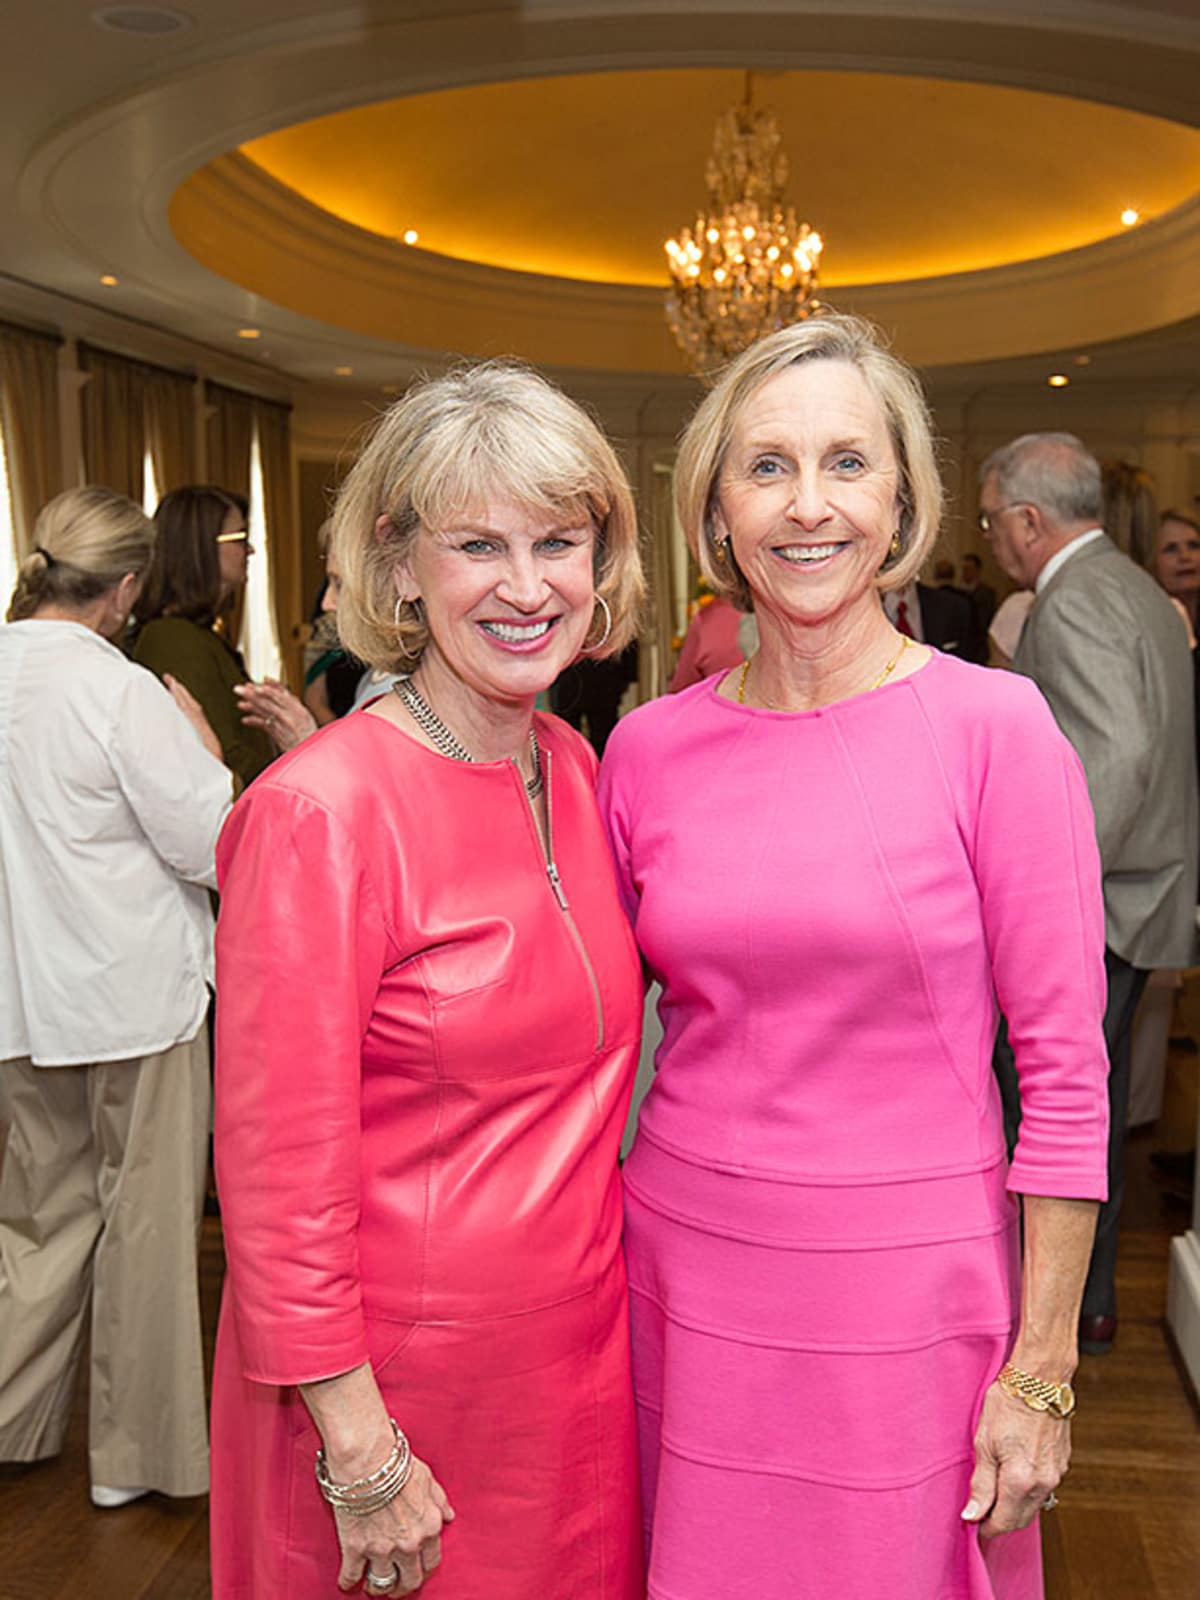 VEPS Luncheon, March 2016, Jane McCarroll and Susan Miclette